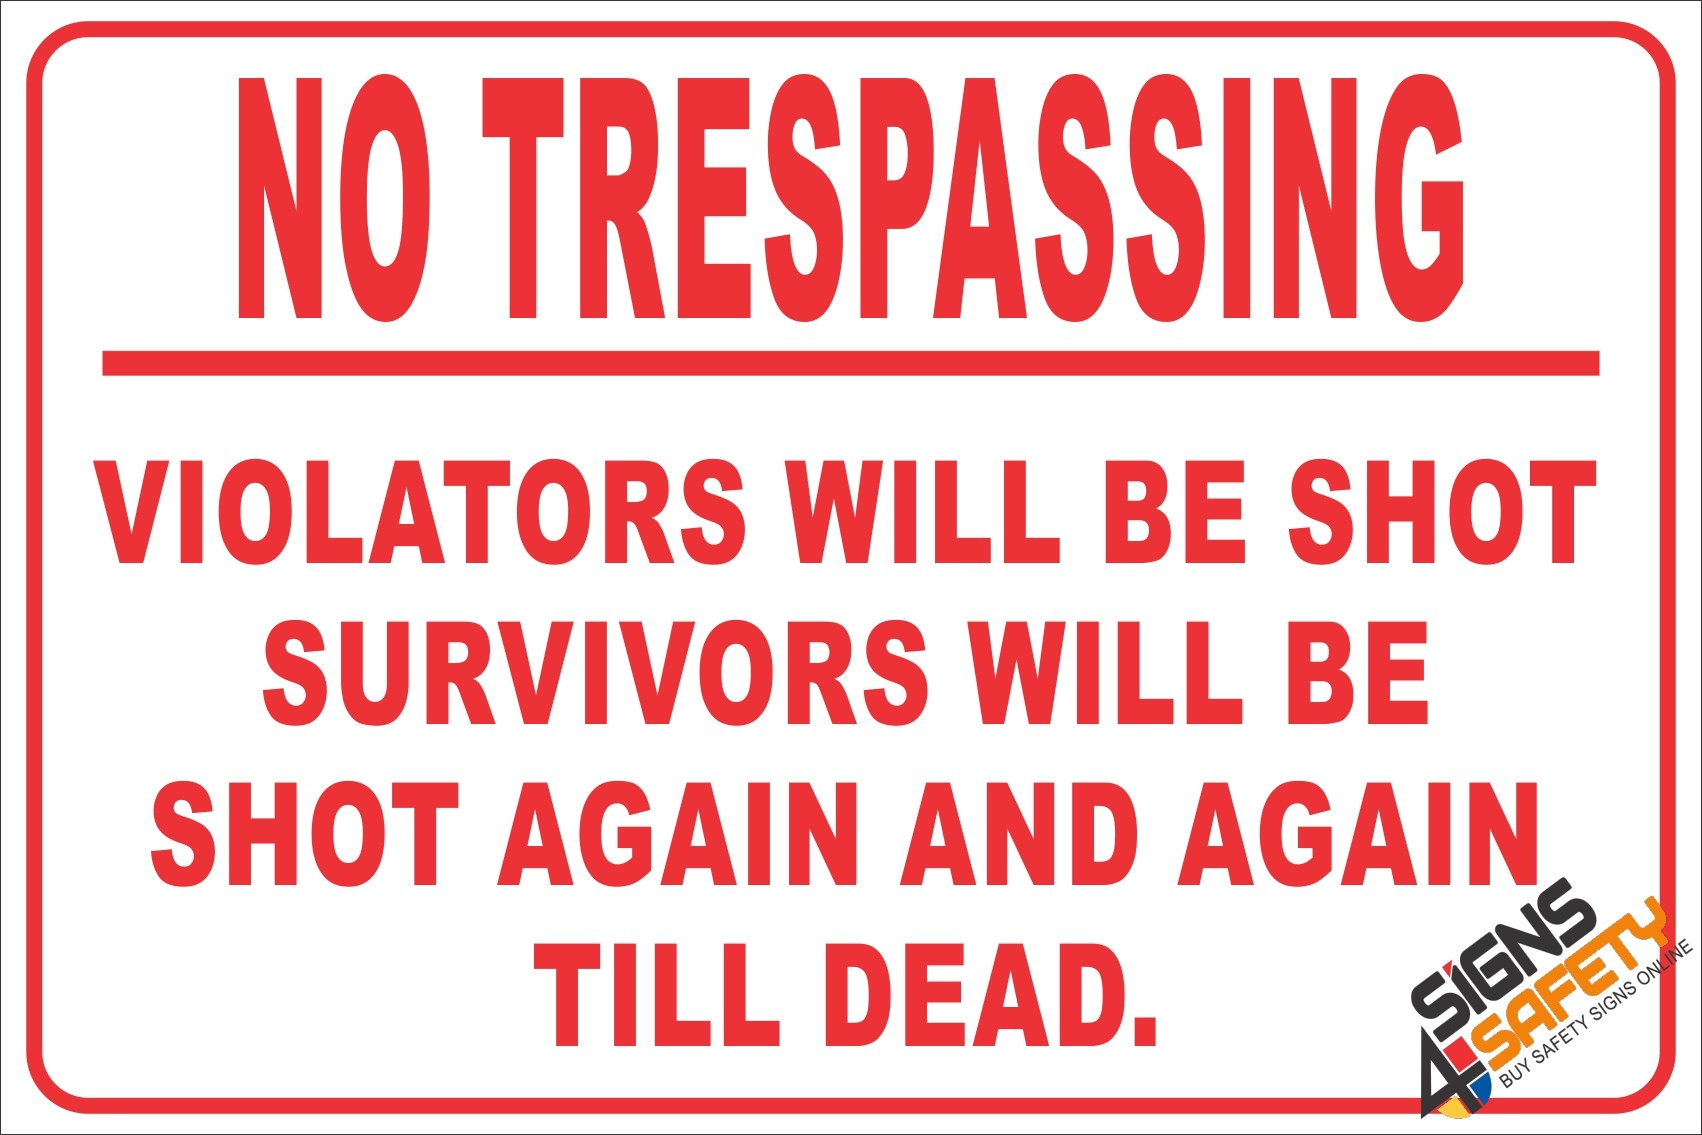 No trespassing photo